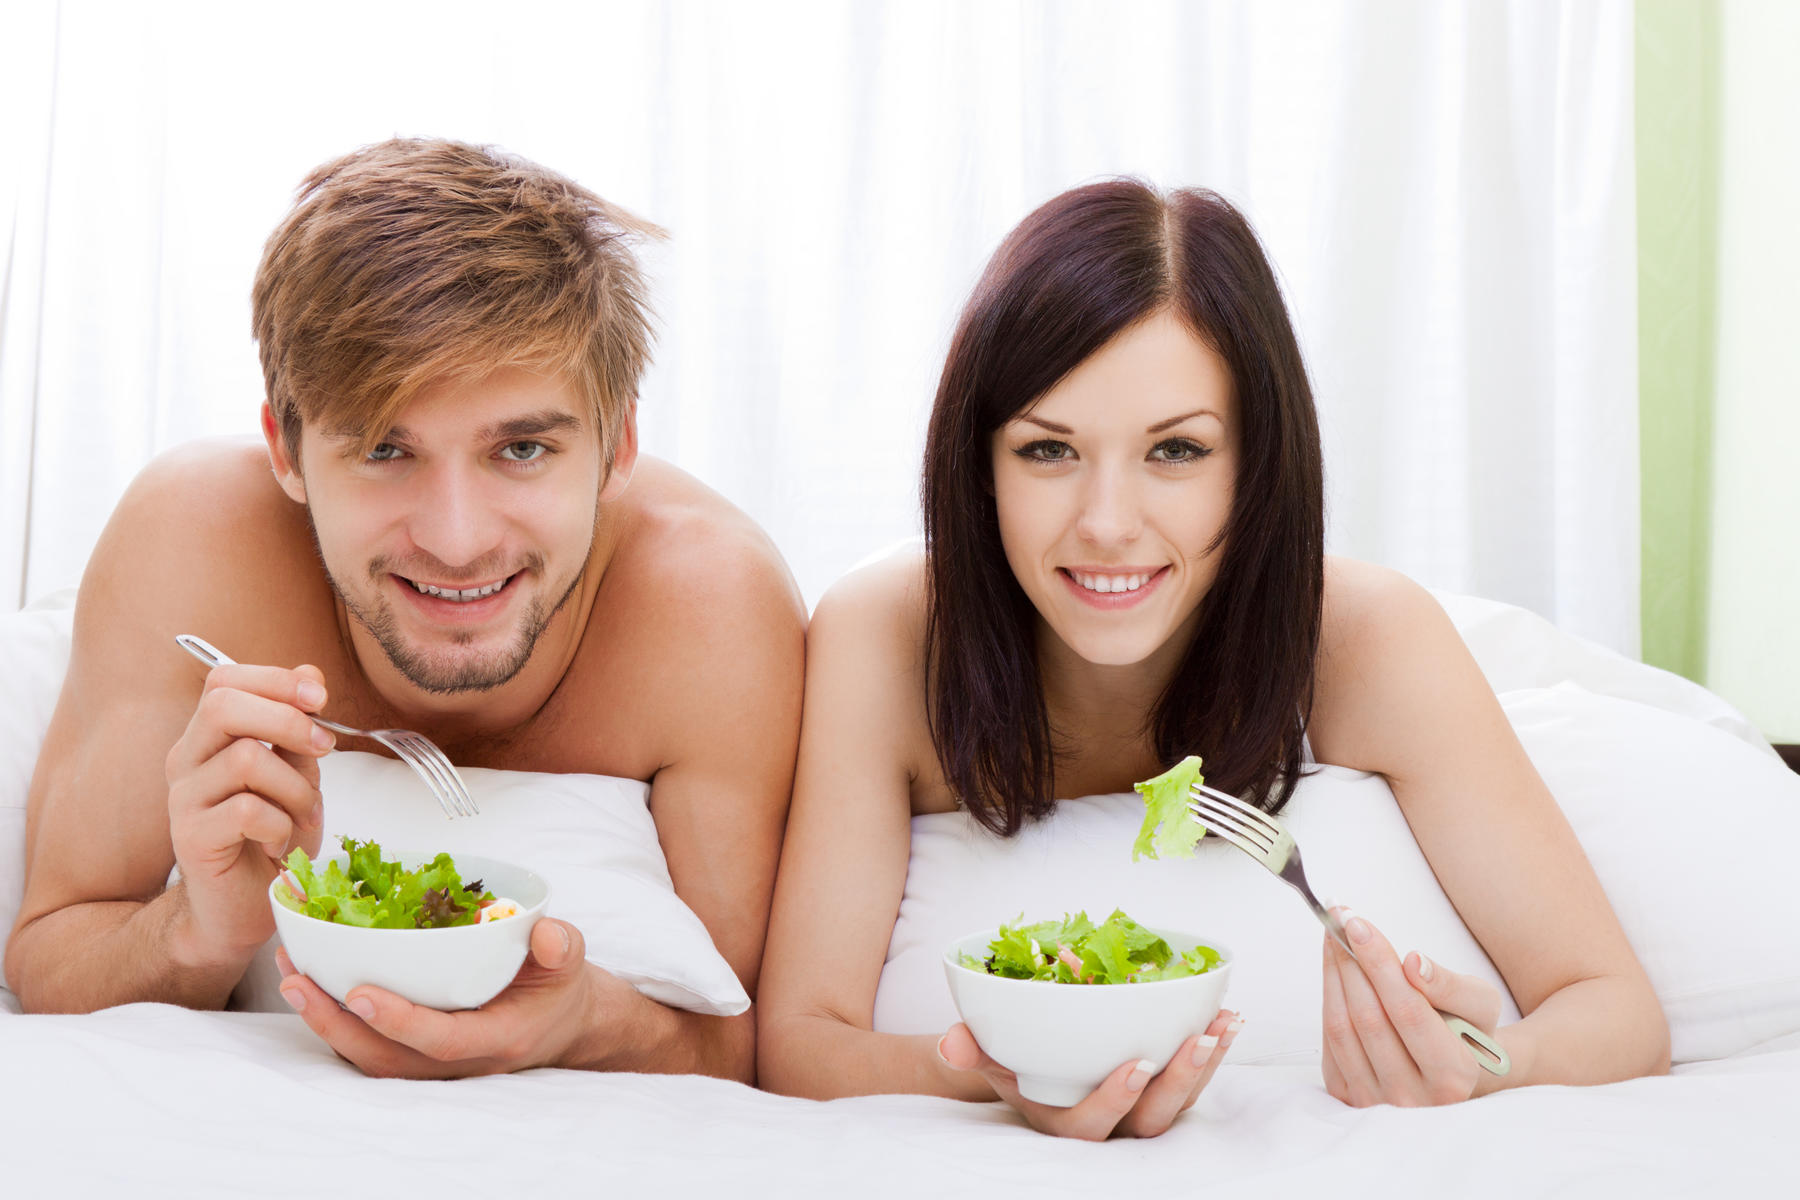 Fertility Diet: What to Eat When Trying to Get Pregnant | Parents